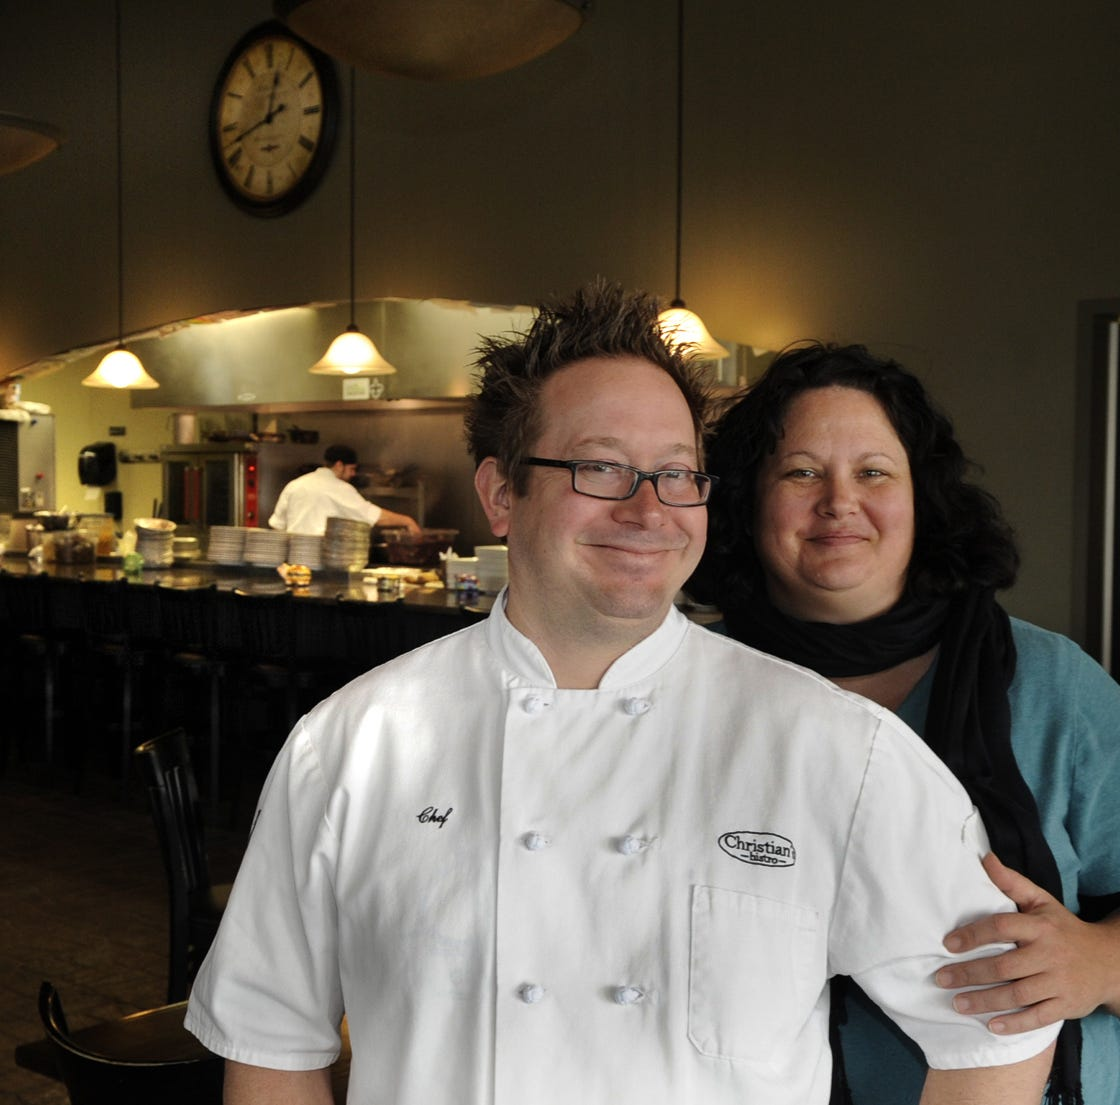 'We will be sad to say goodbye': Christian's Bistro in Plover to close